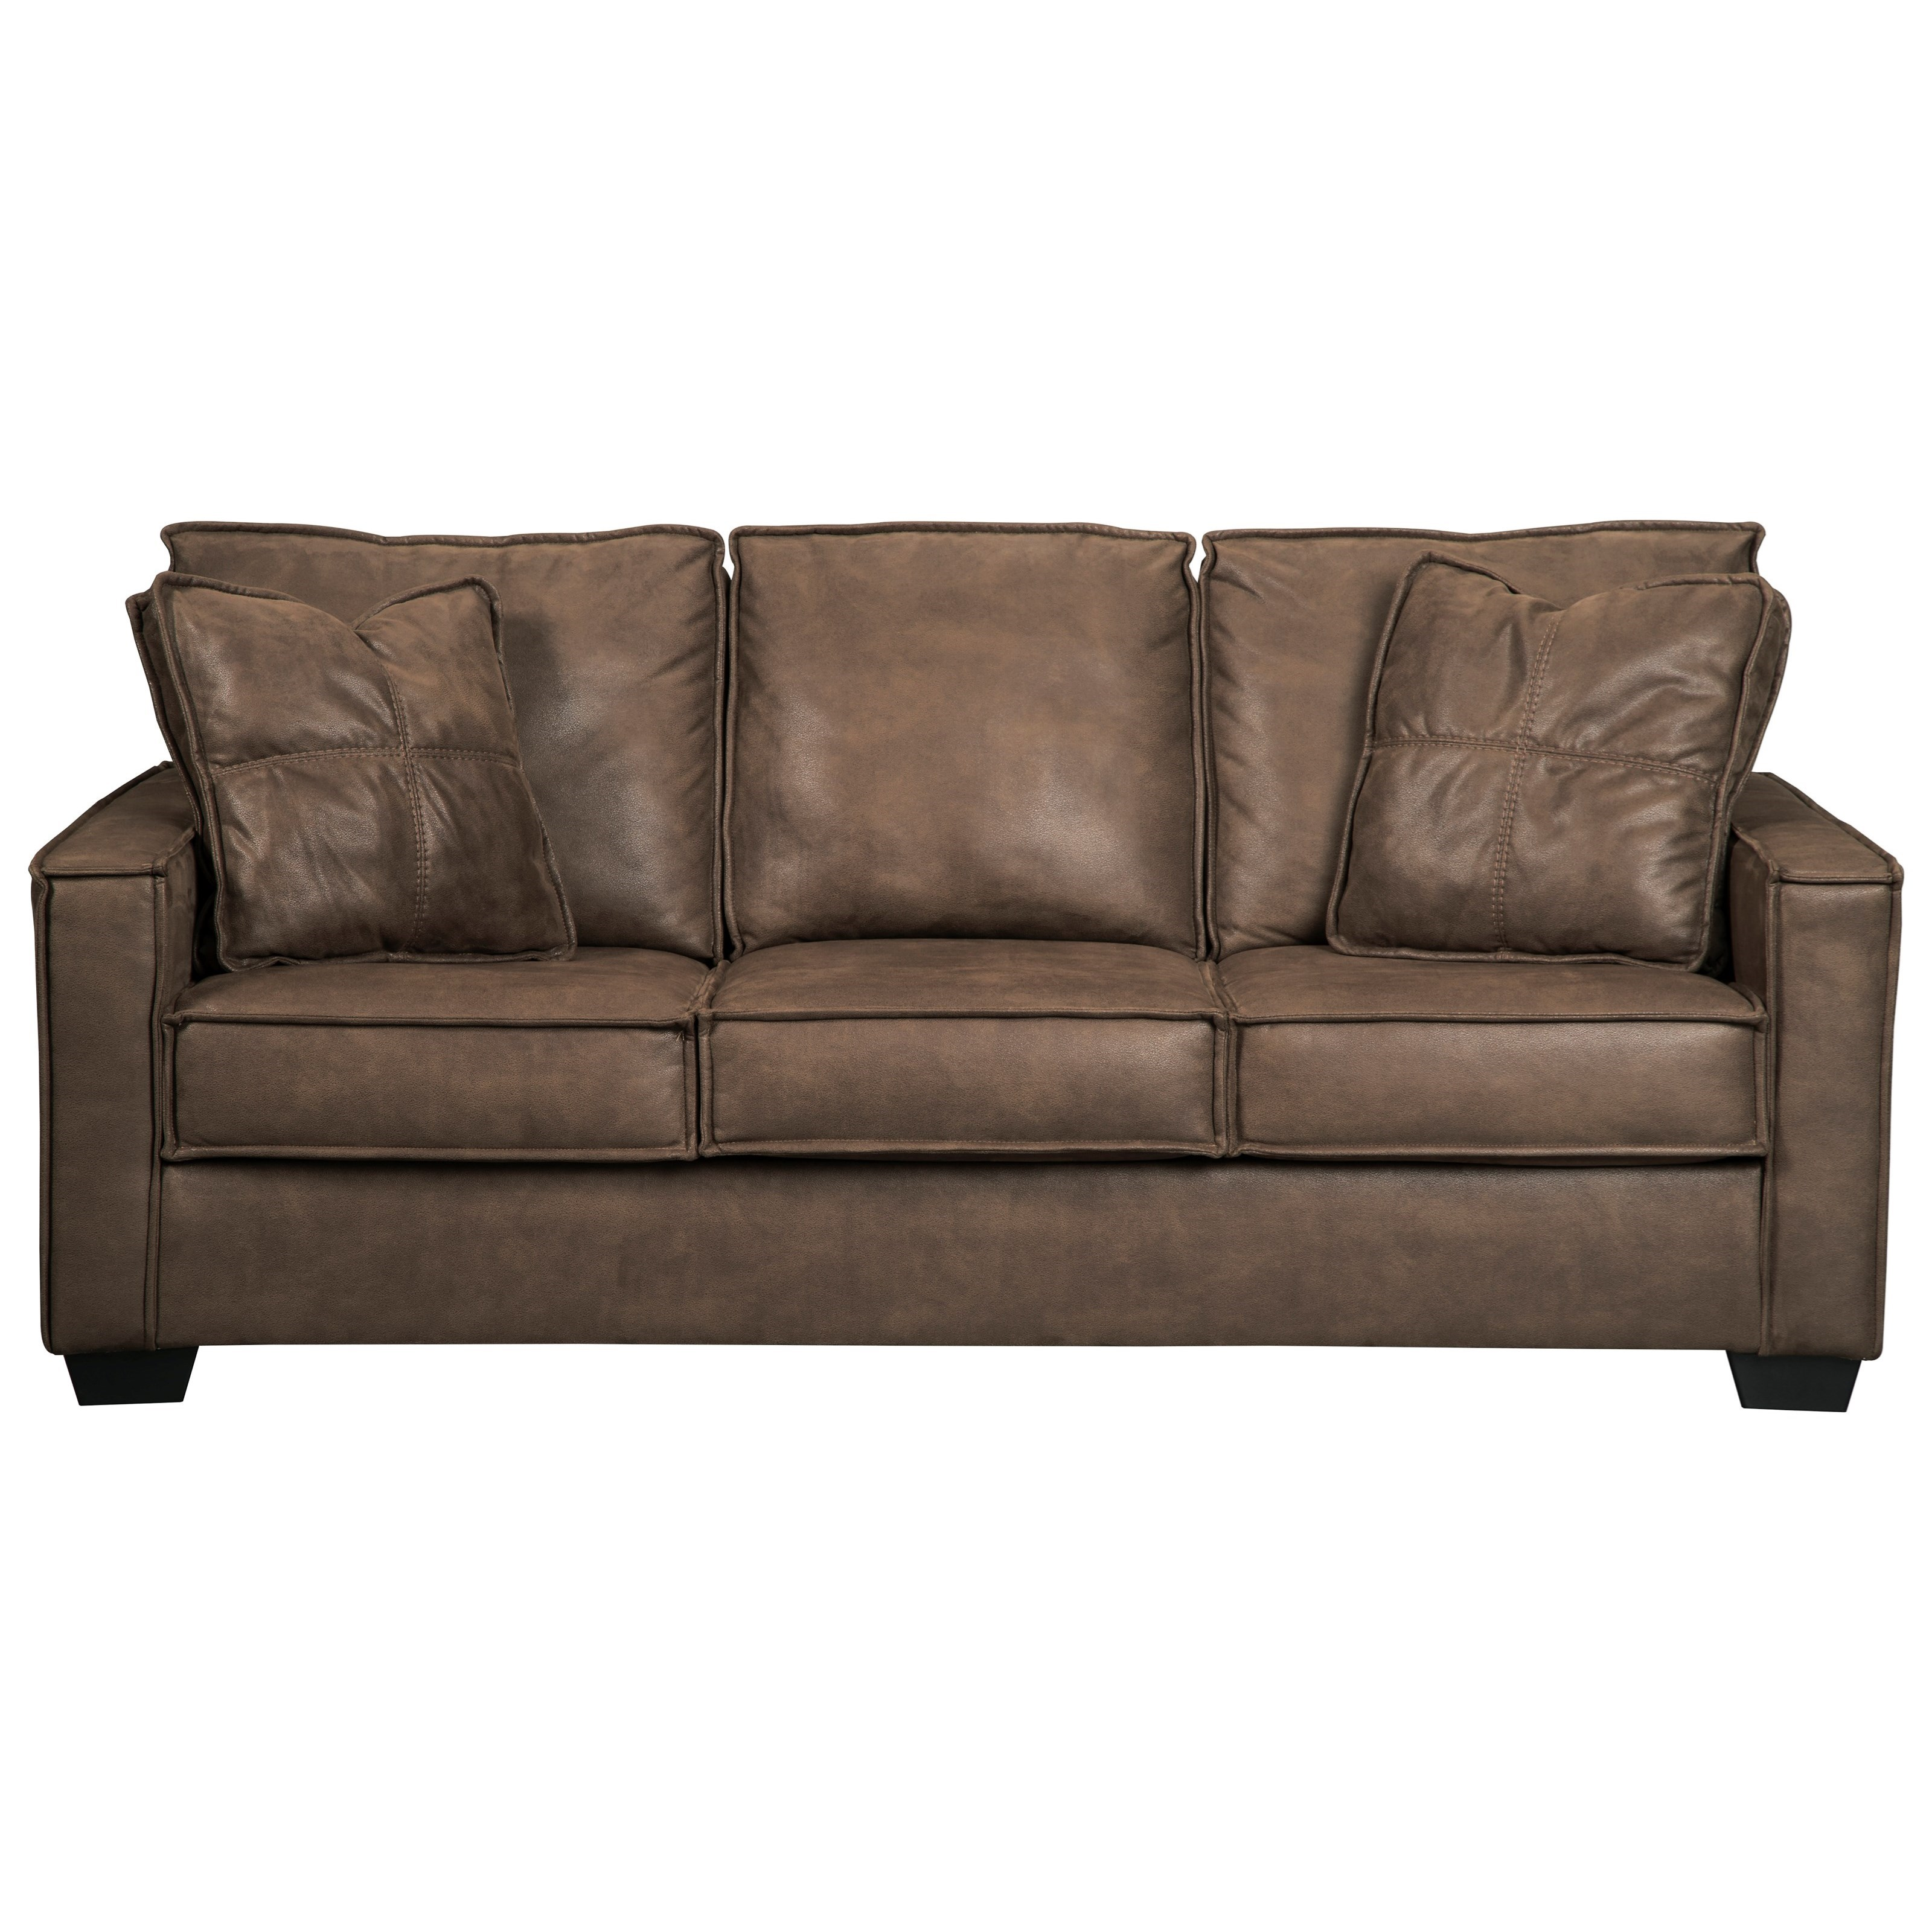 Faux Leather Sofa with Piecrust Welt Trim